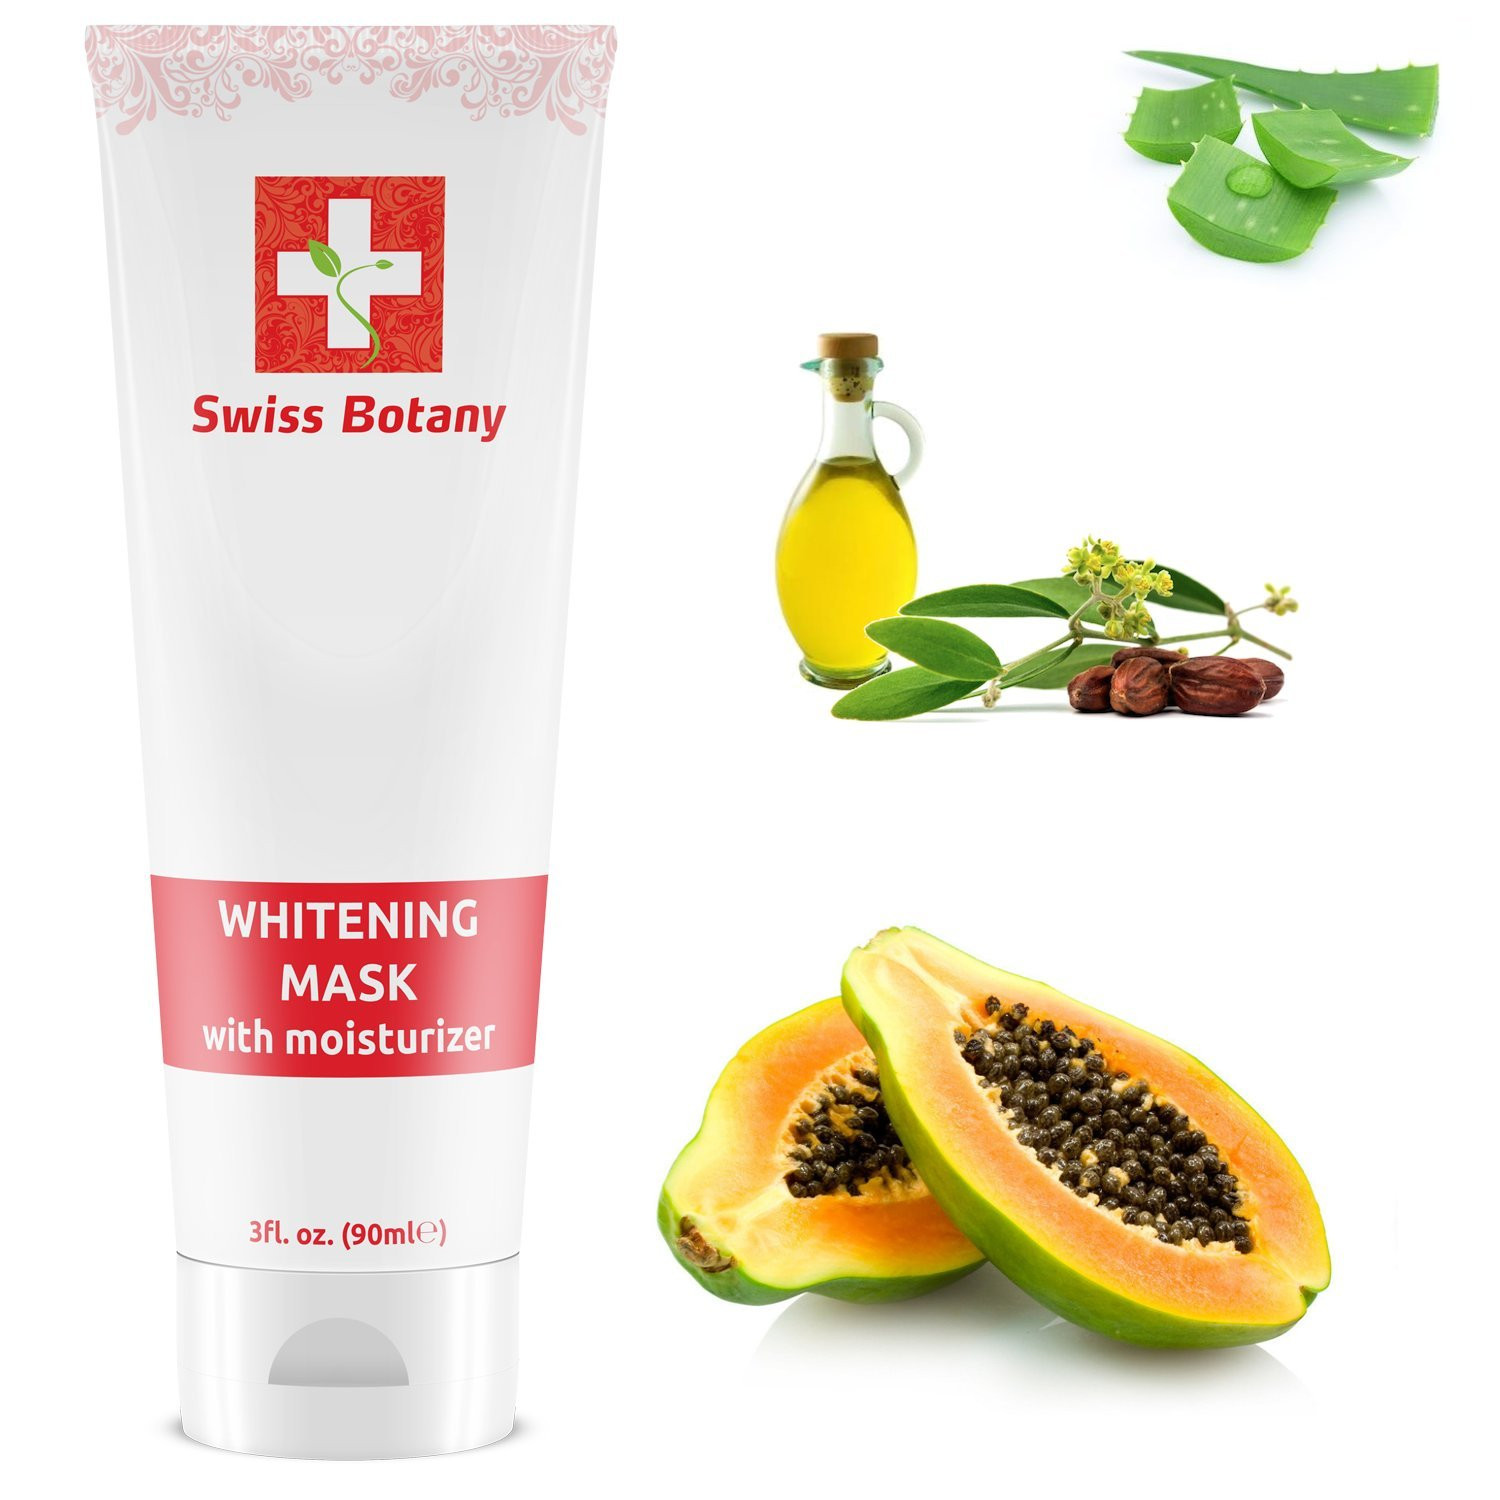 Whitening cream for Sensitive and Intimate areas